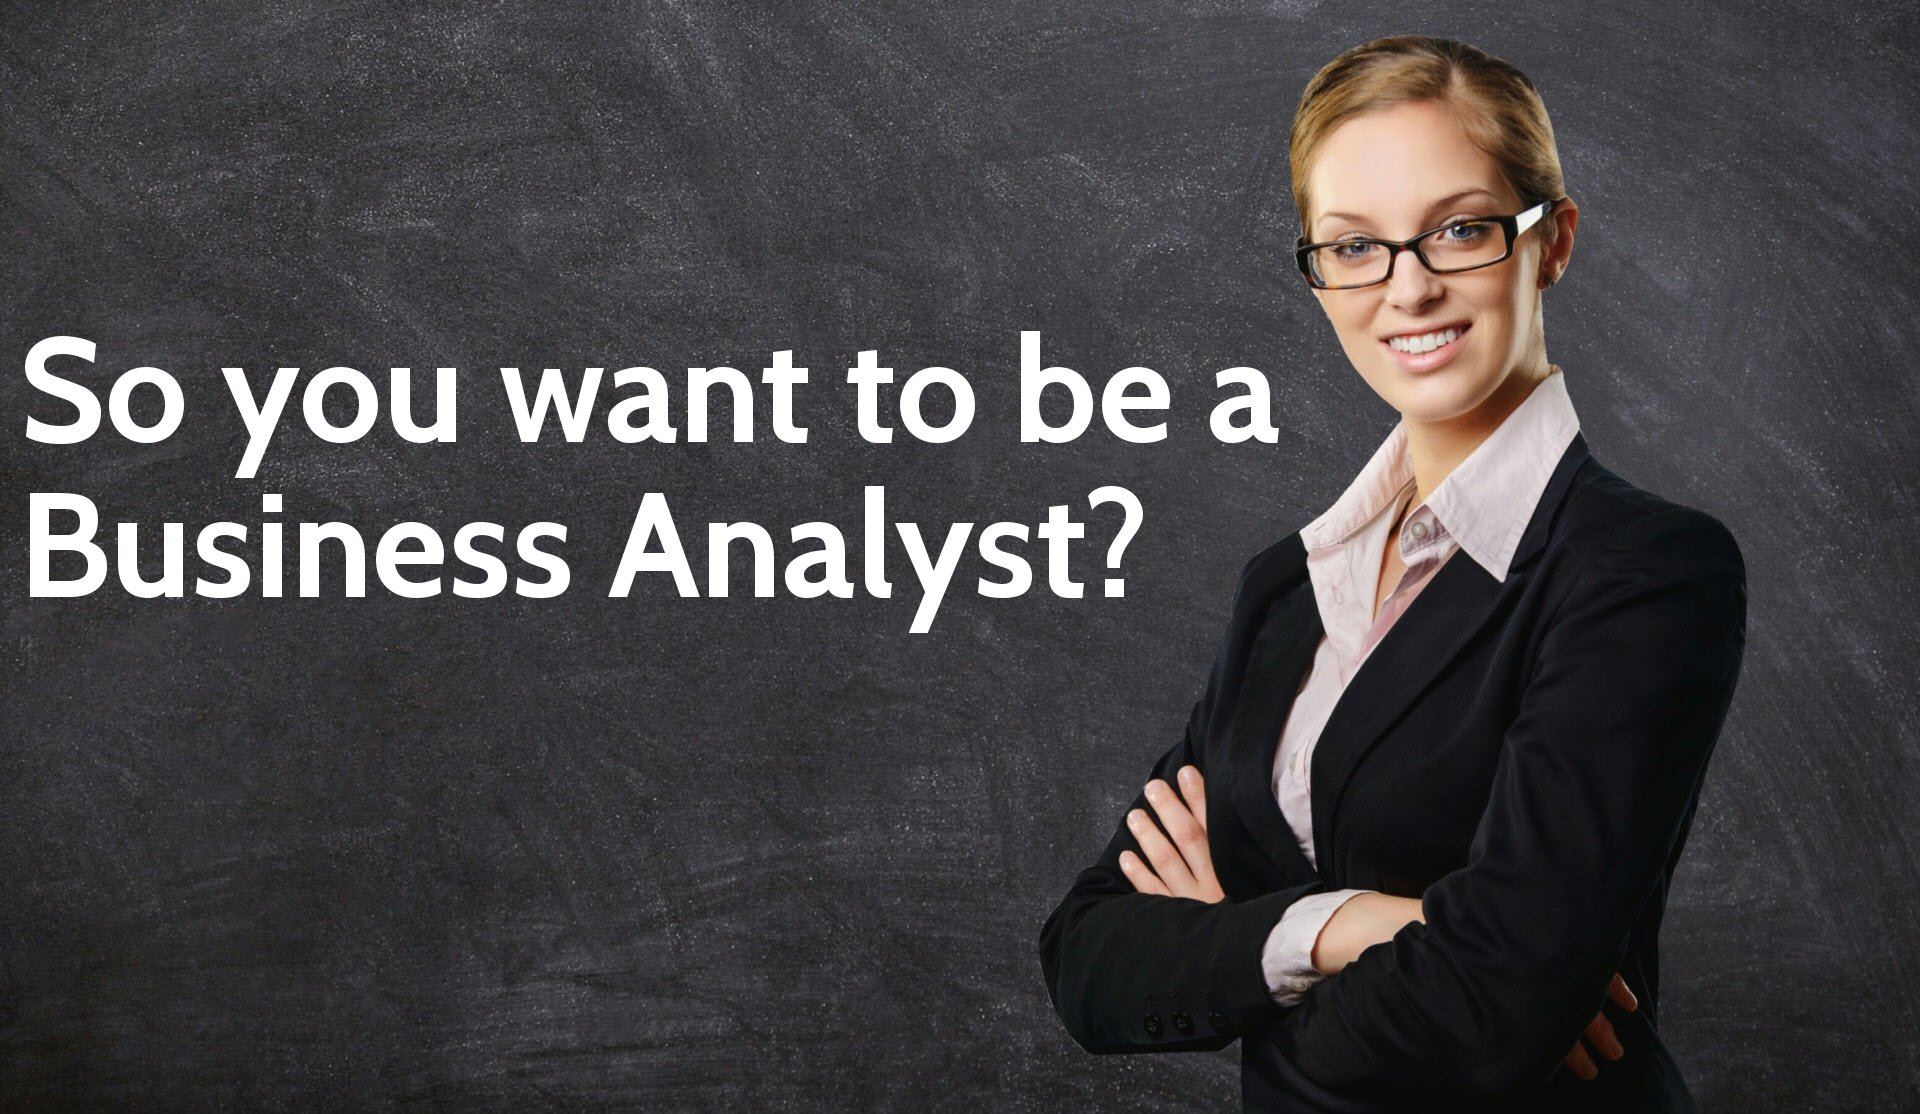 So you want to be a Business Analyst?